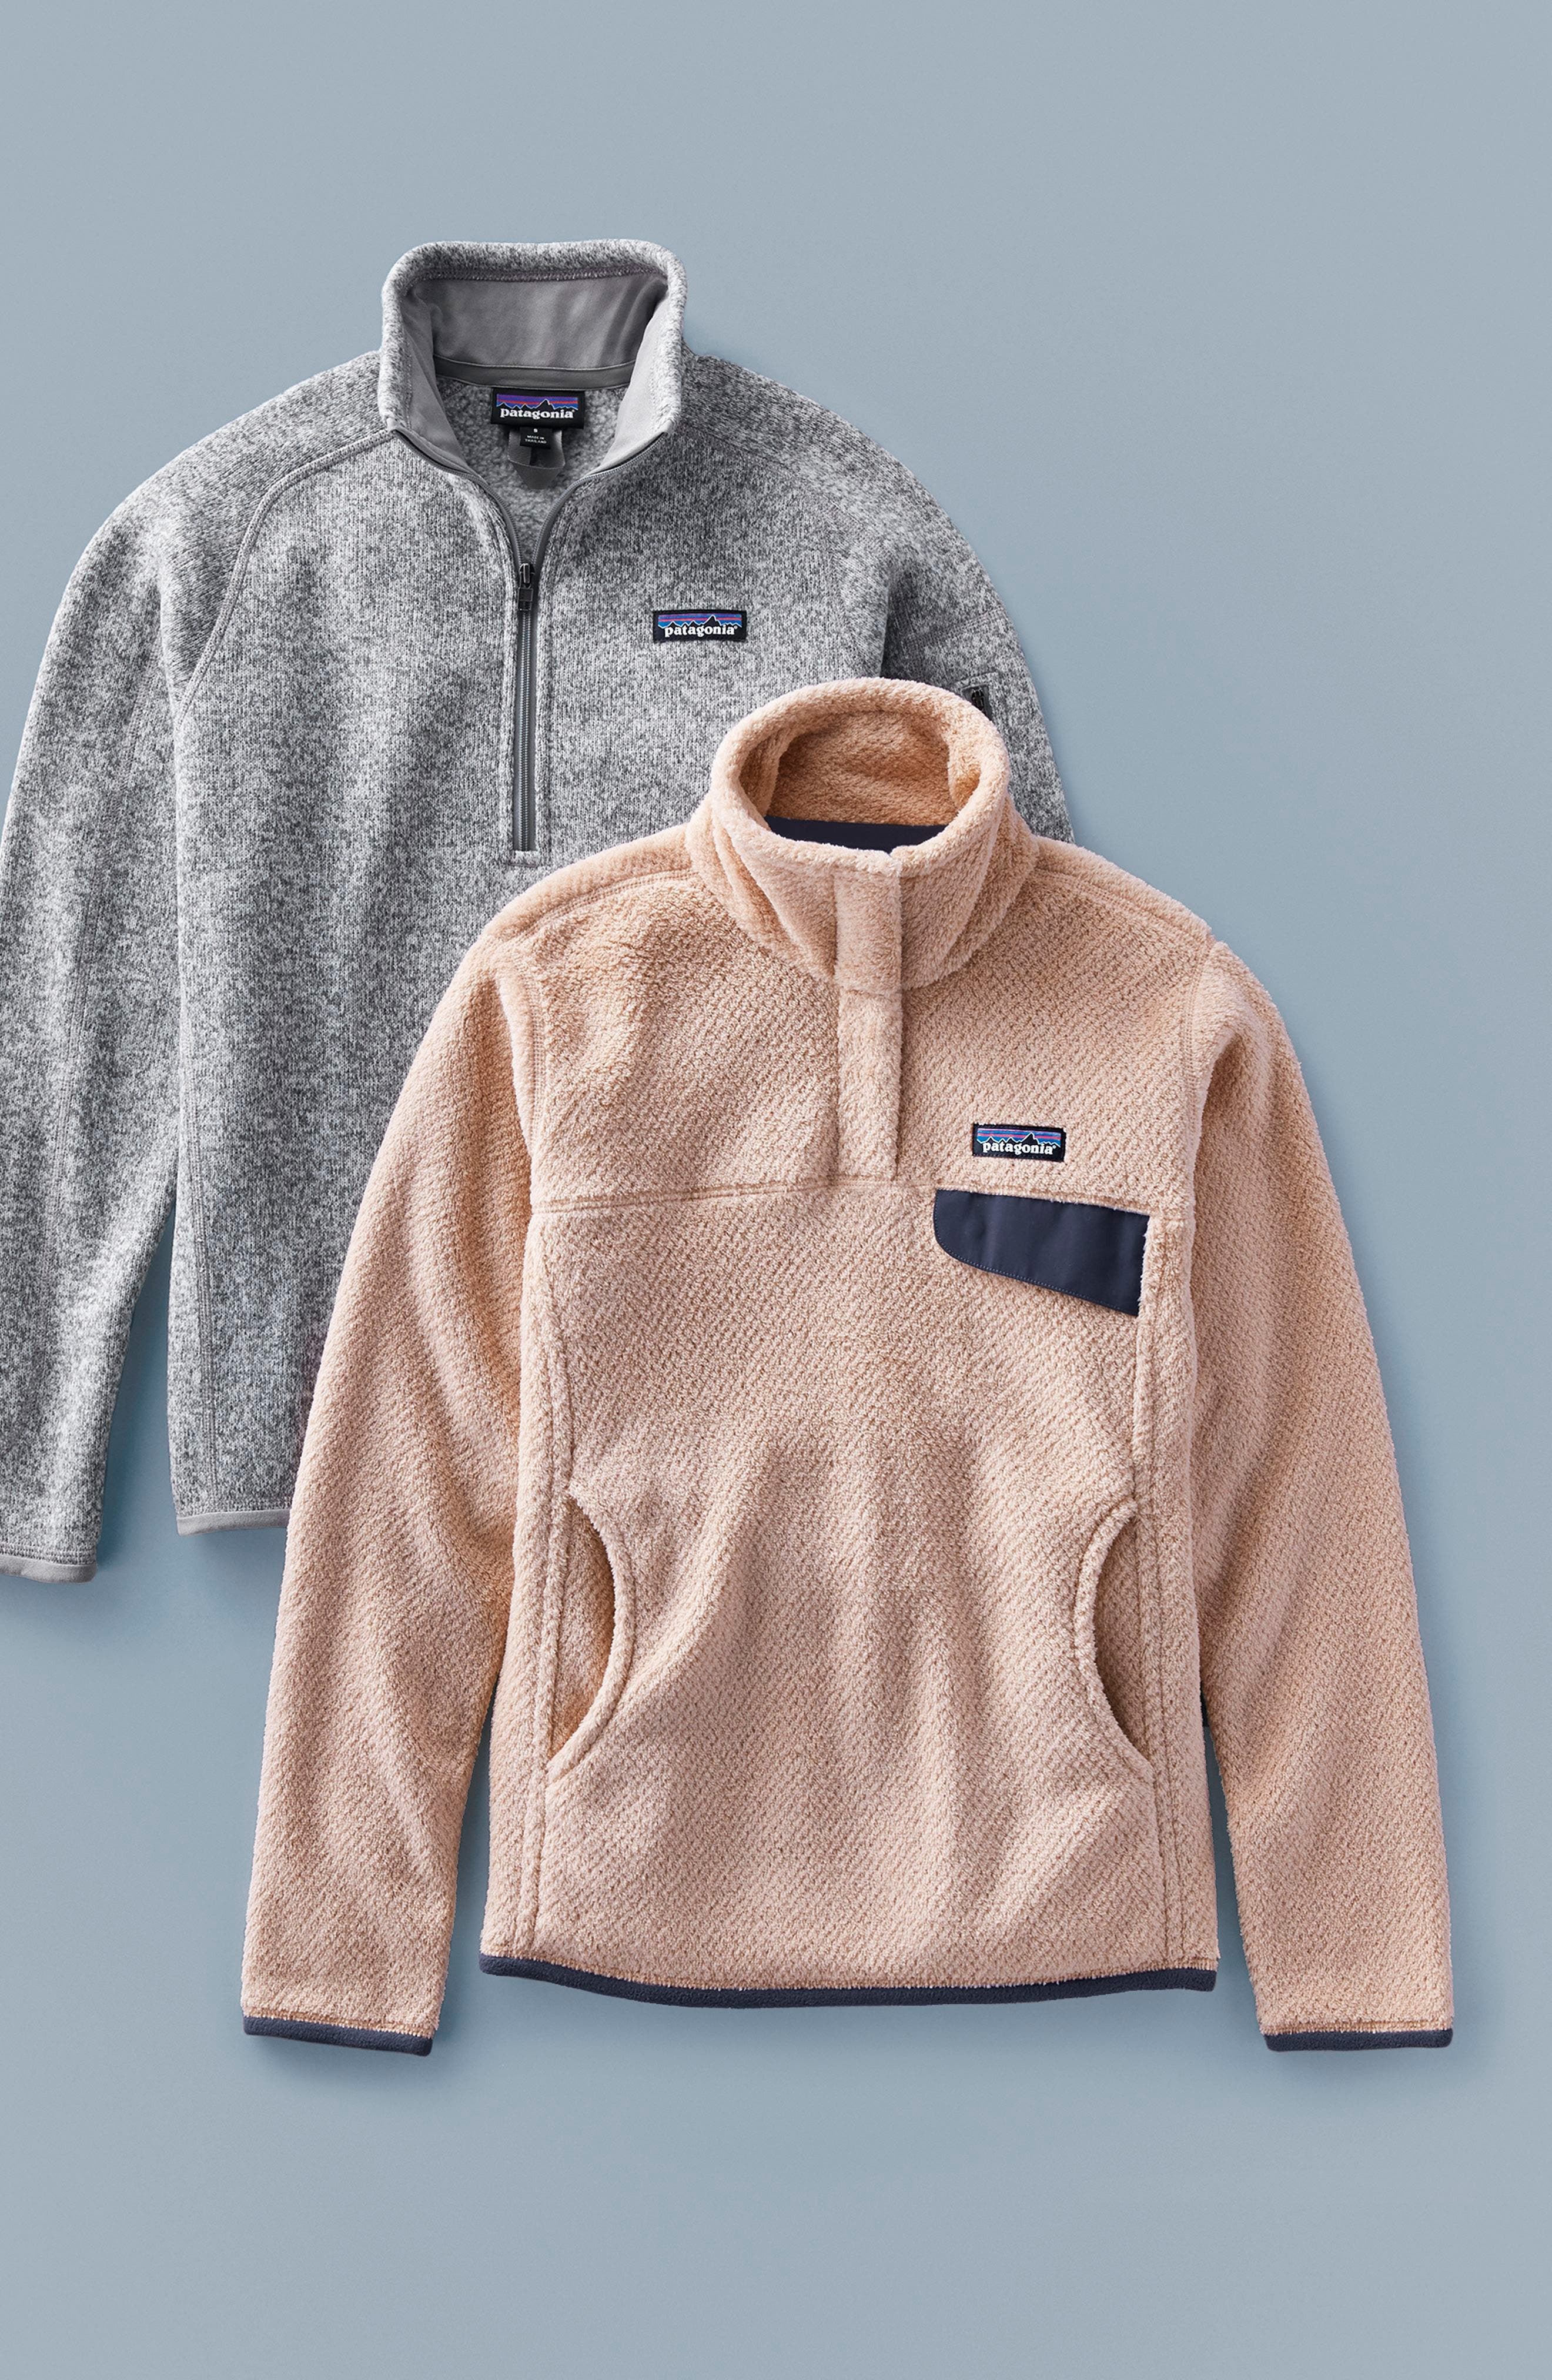 PATAGONIA, Re-Tool Snap-T<sup>®</sup> Fleece Pullover, Alternate thumbnail 2, color, 001